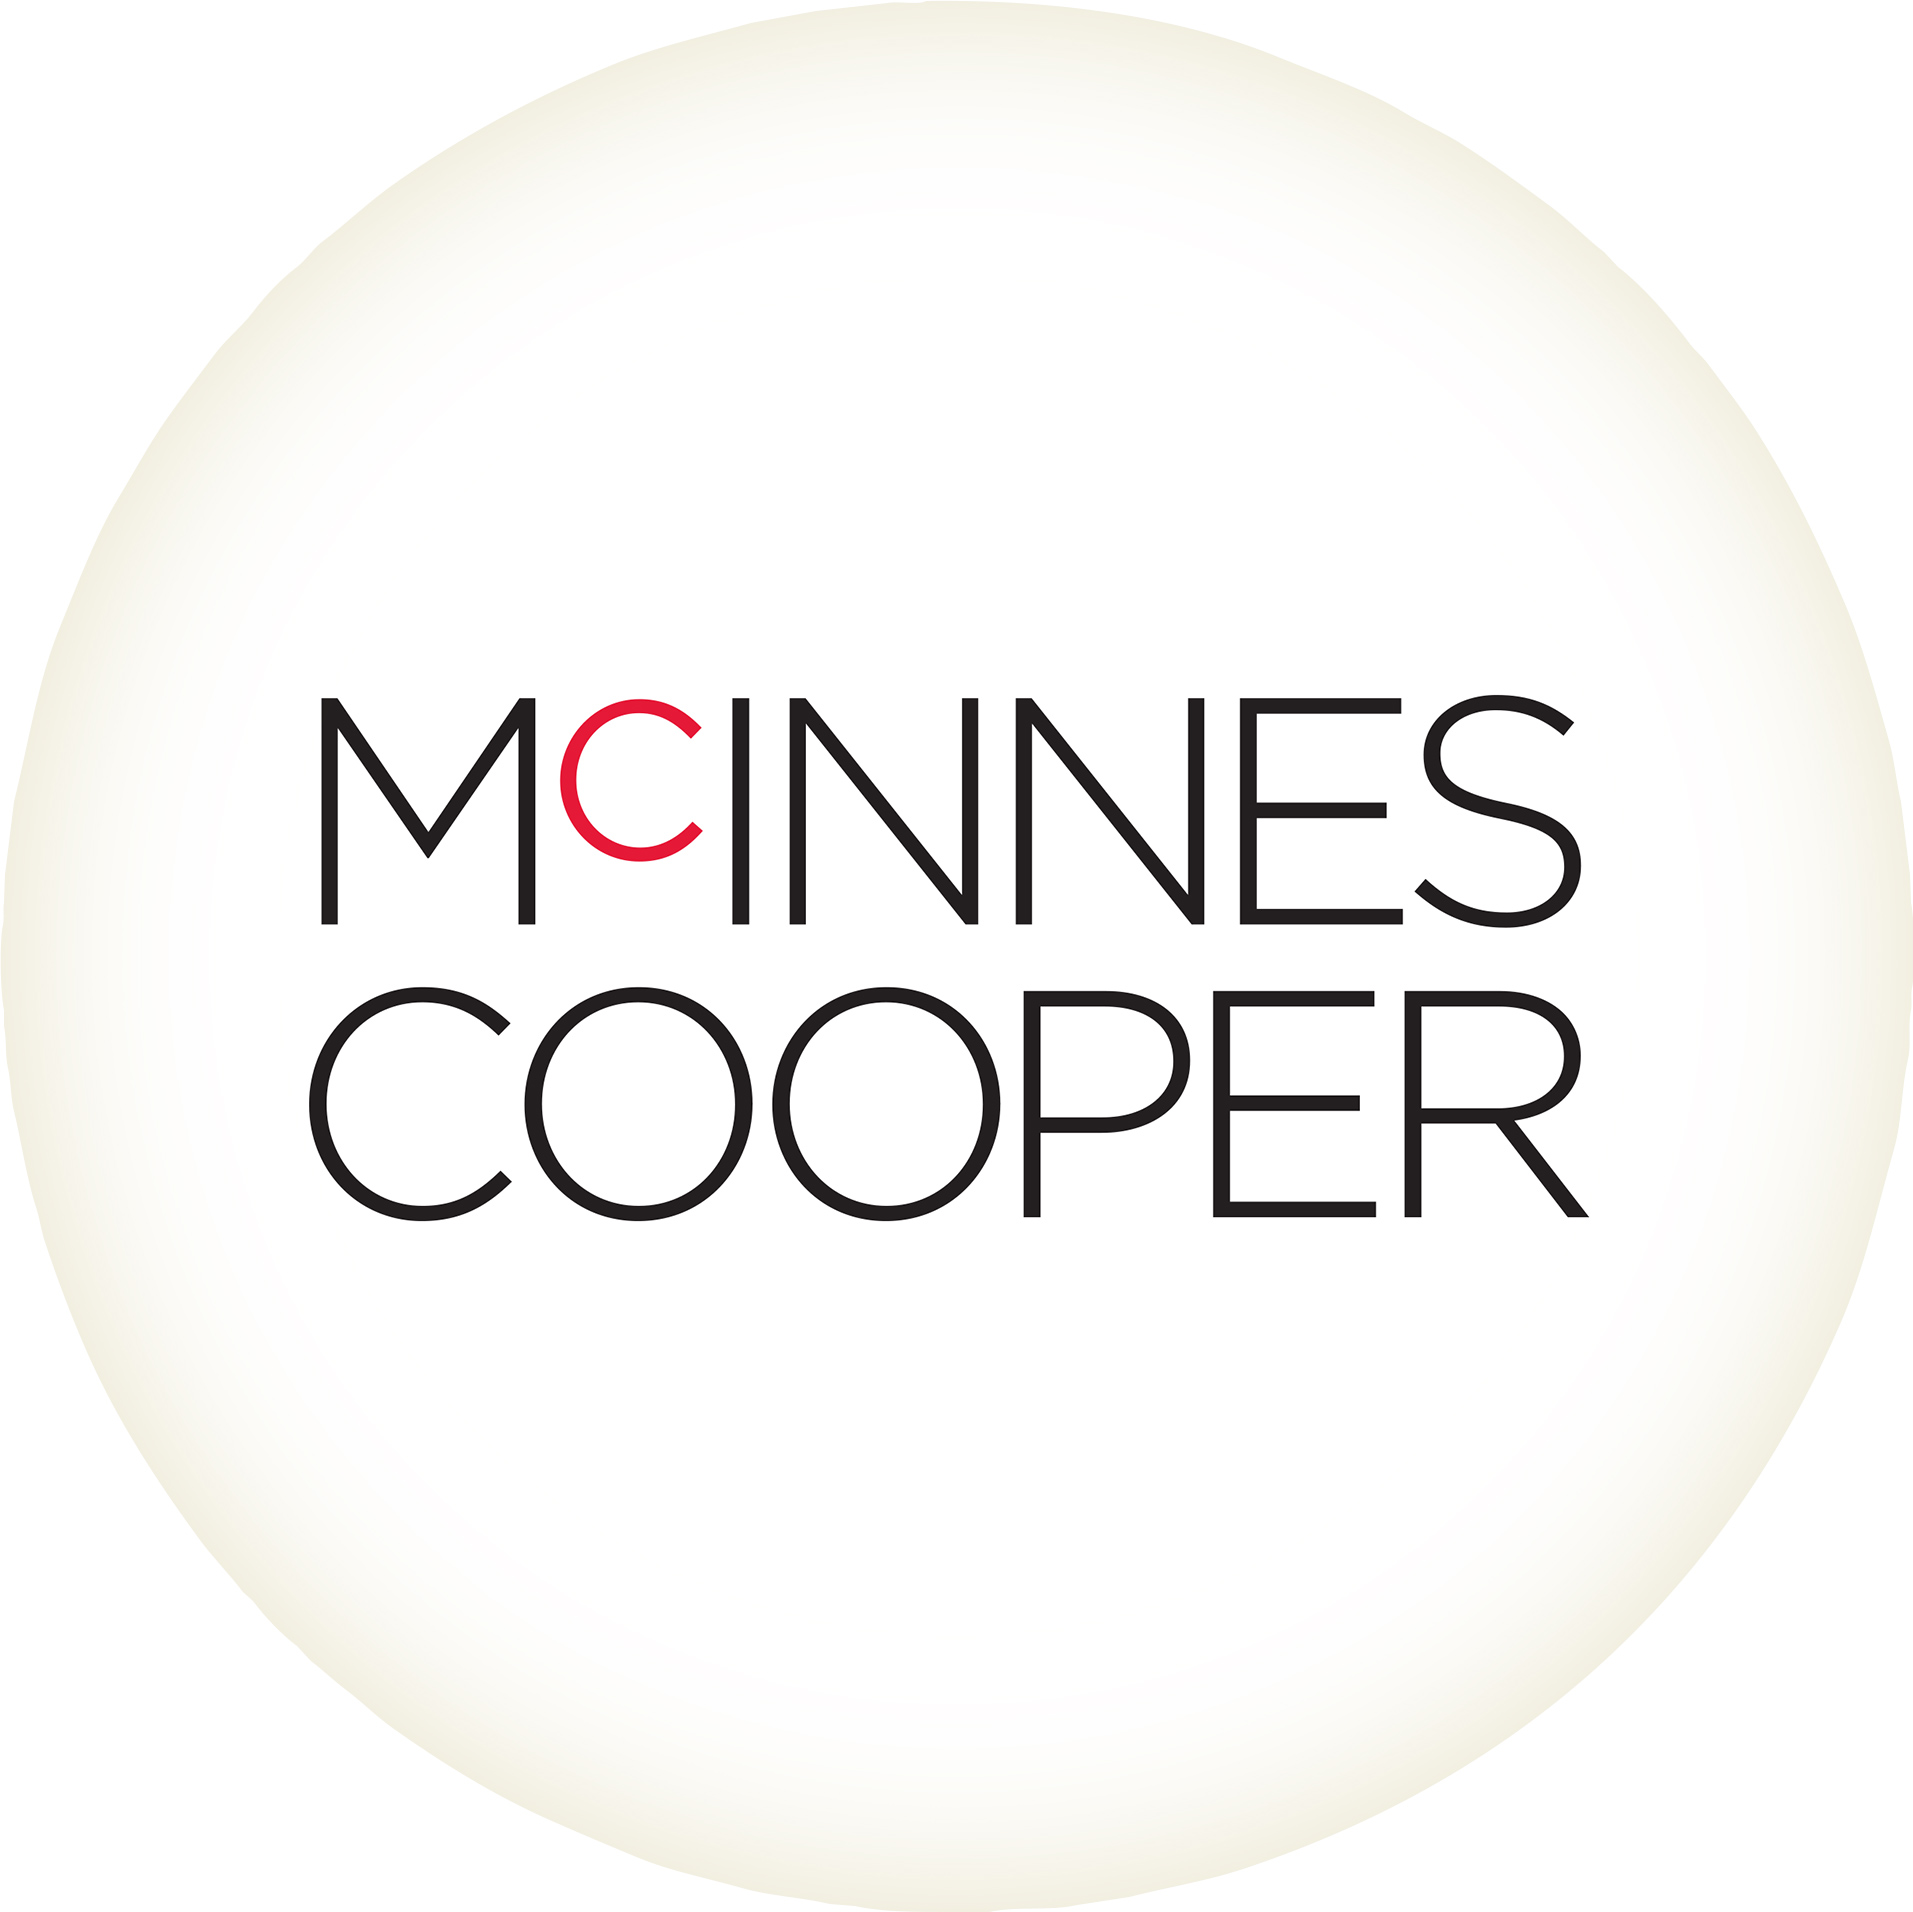 McInnes Cooper, Legal Counsel